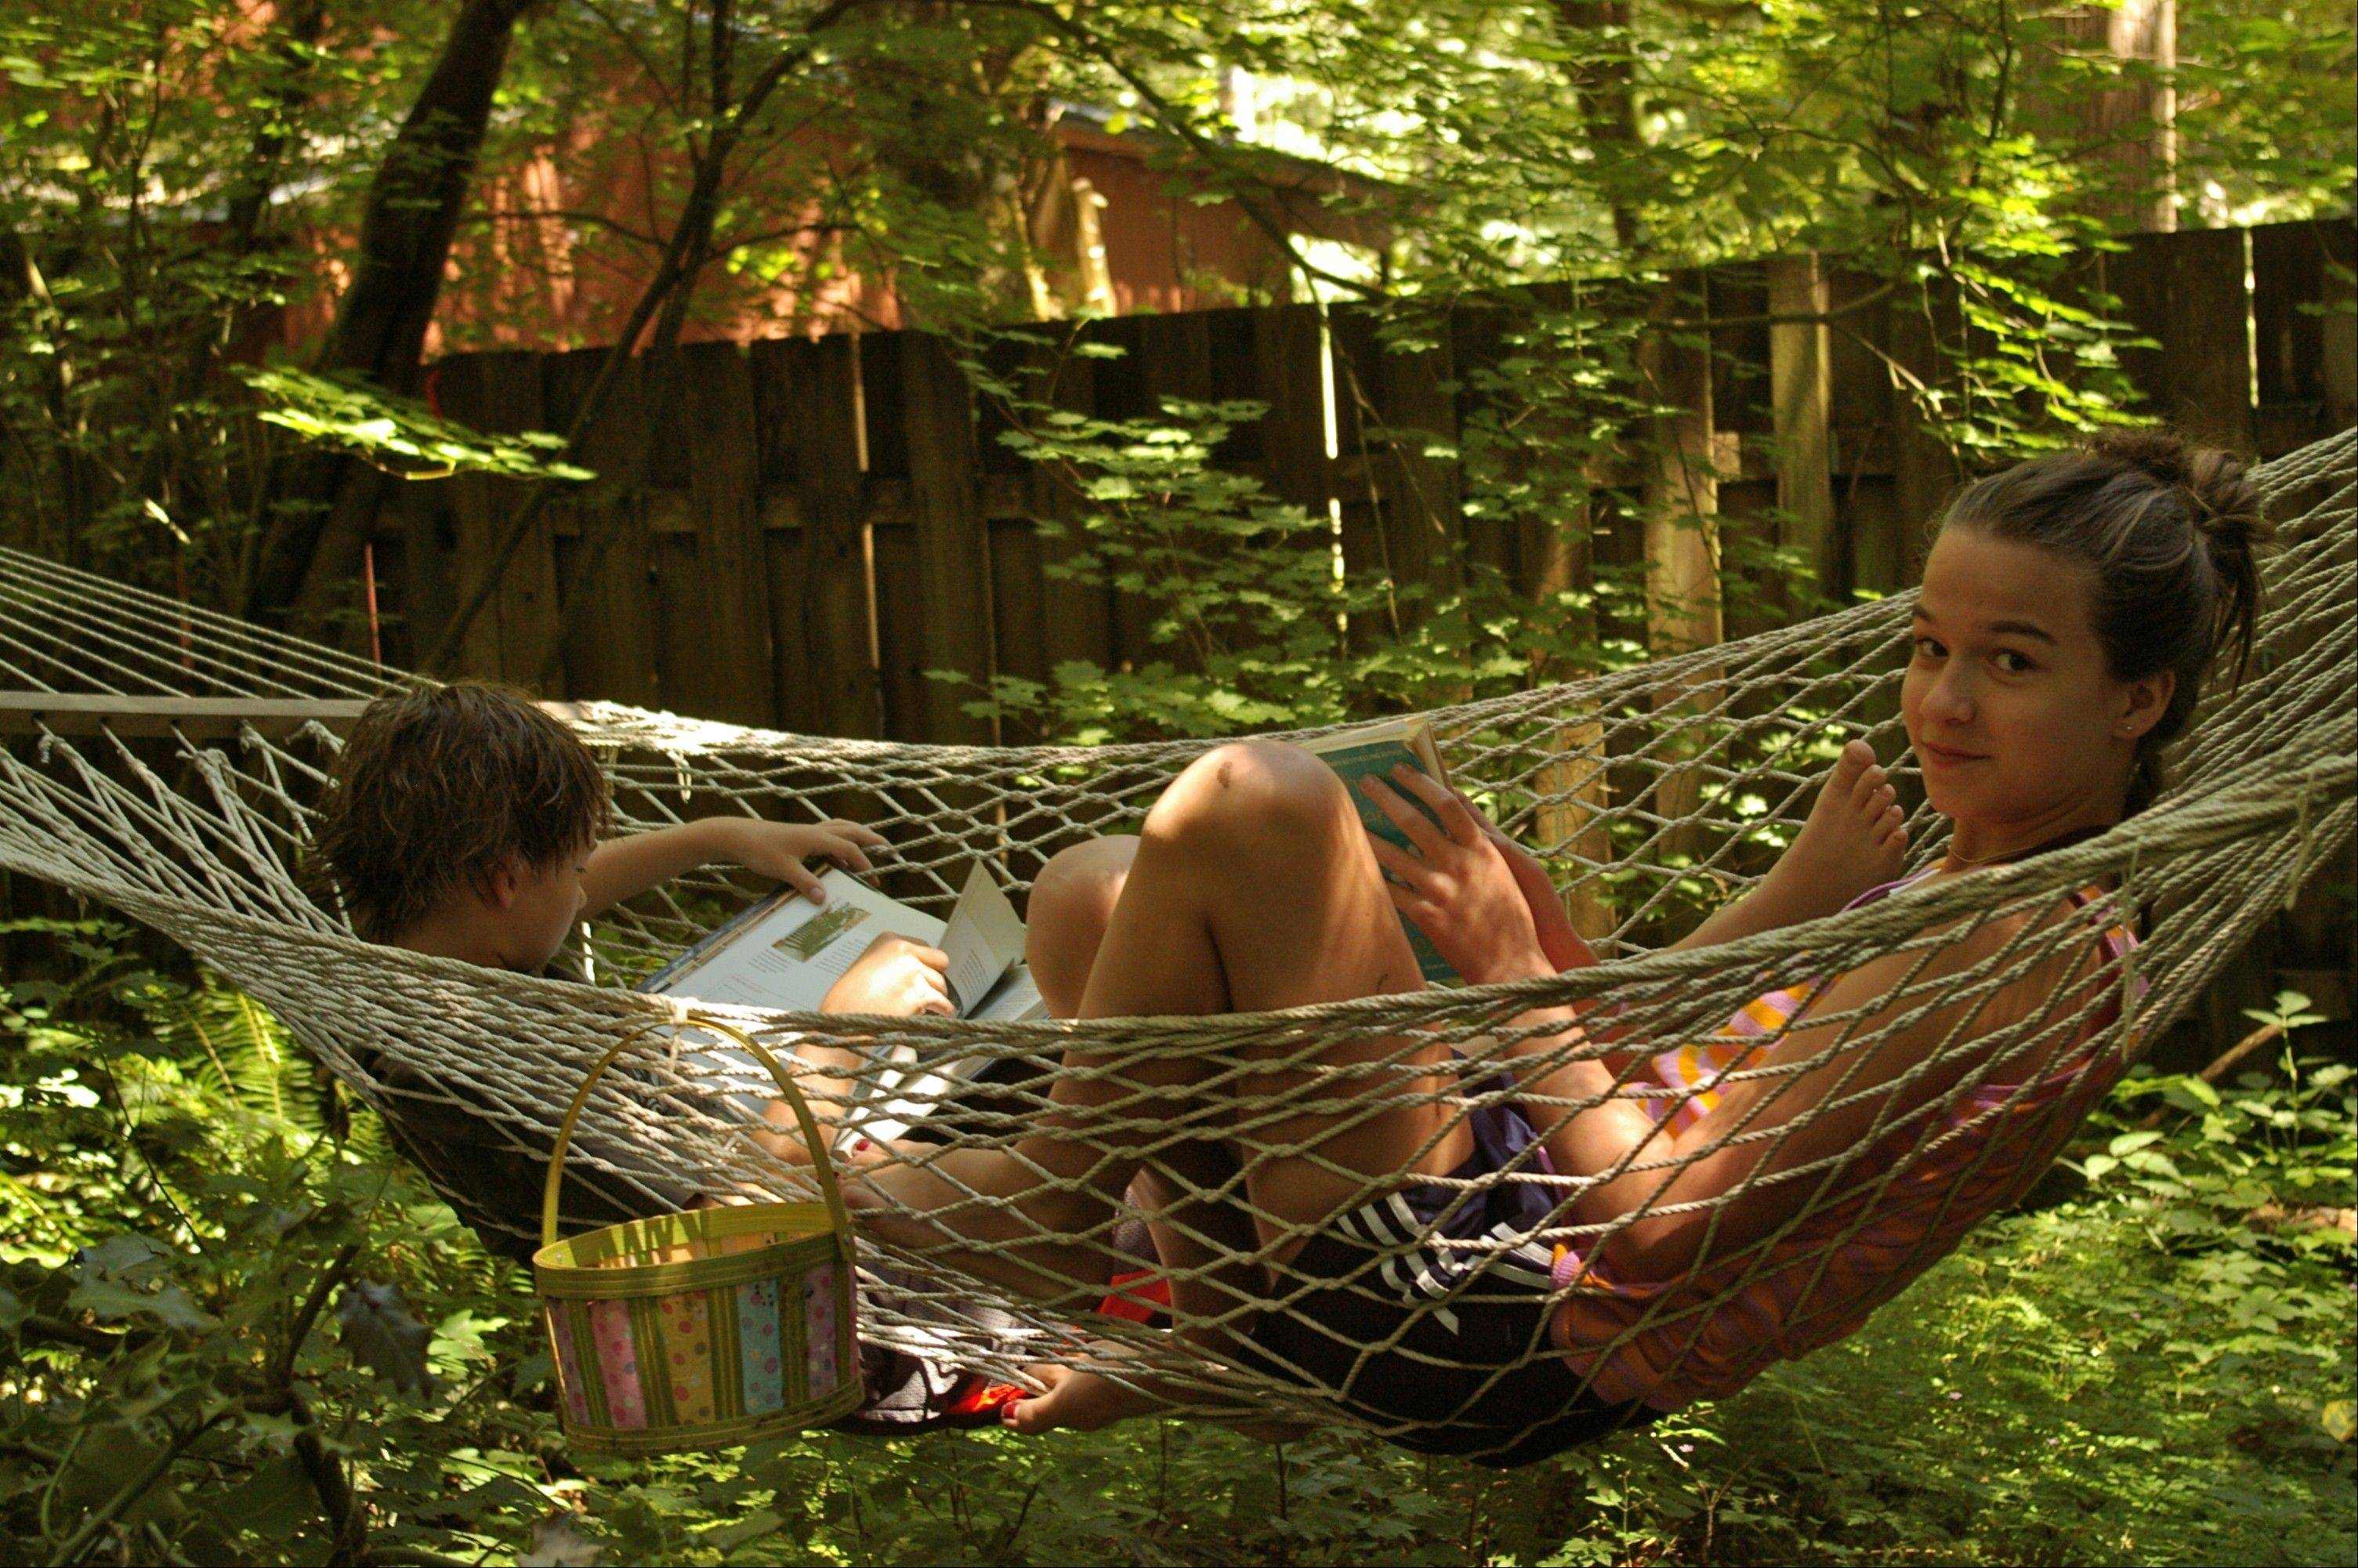 Those needing a little downtime will find it under a new shade tree and hammock off to the side.